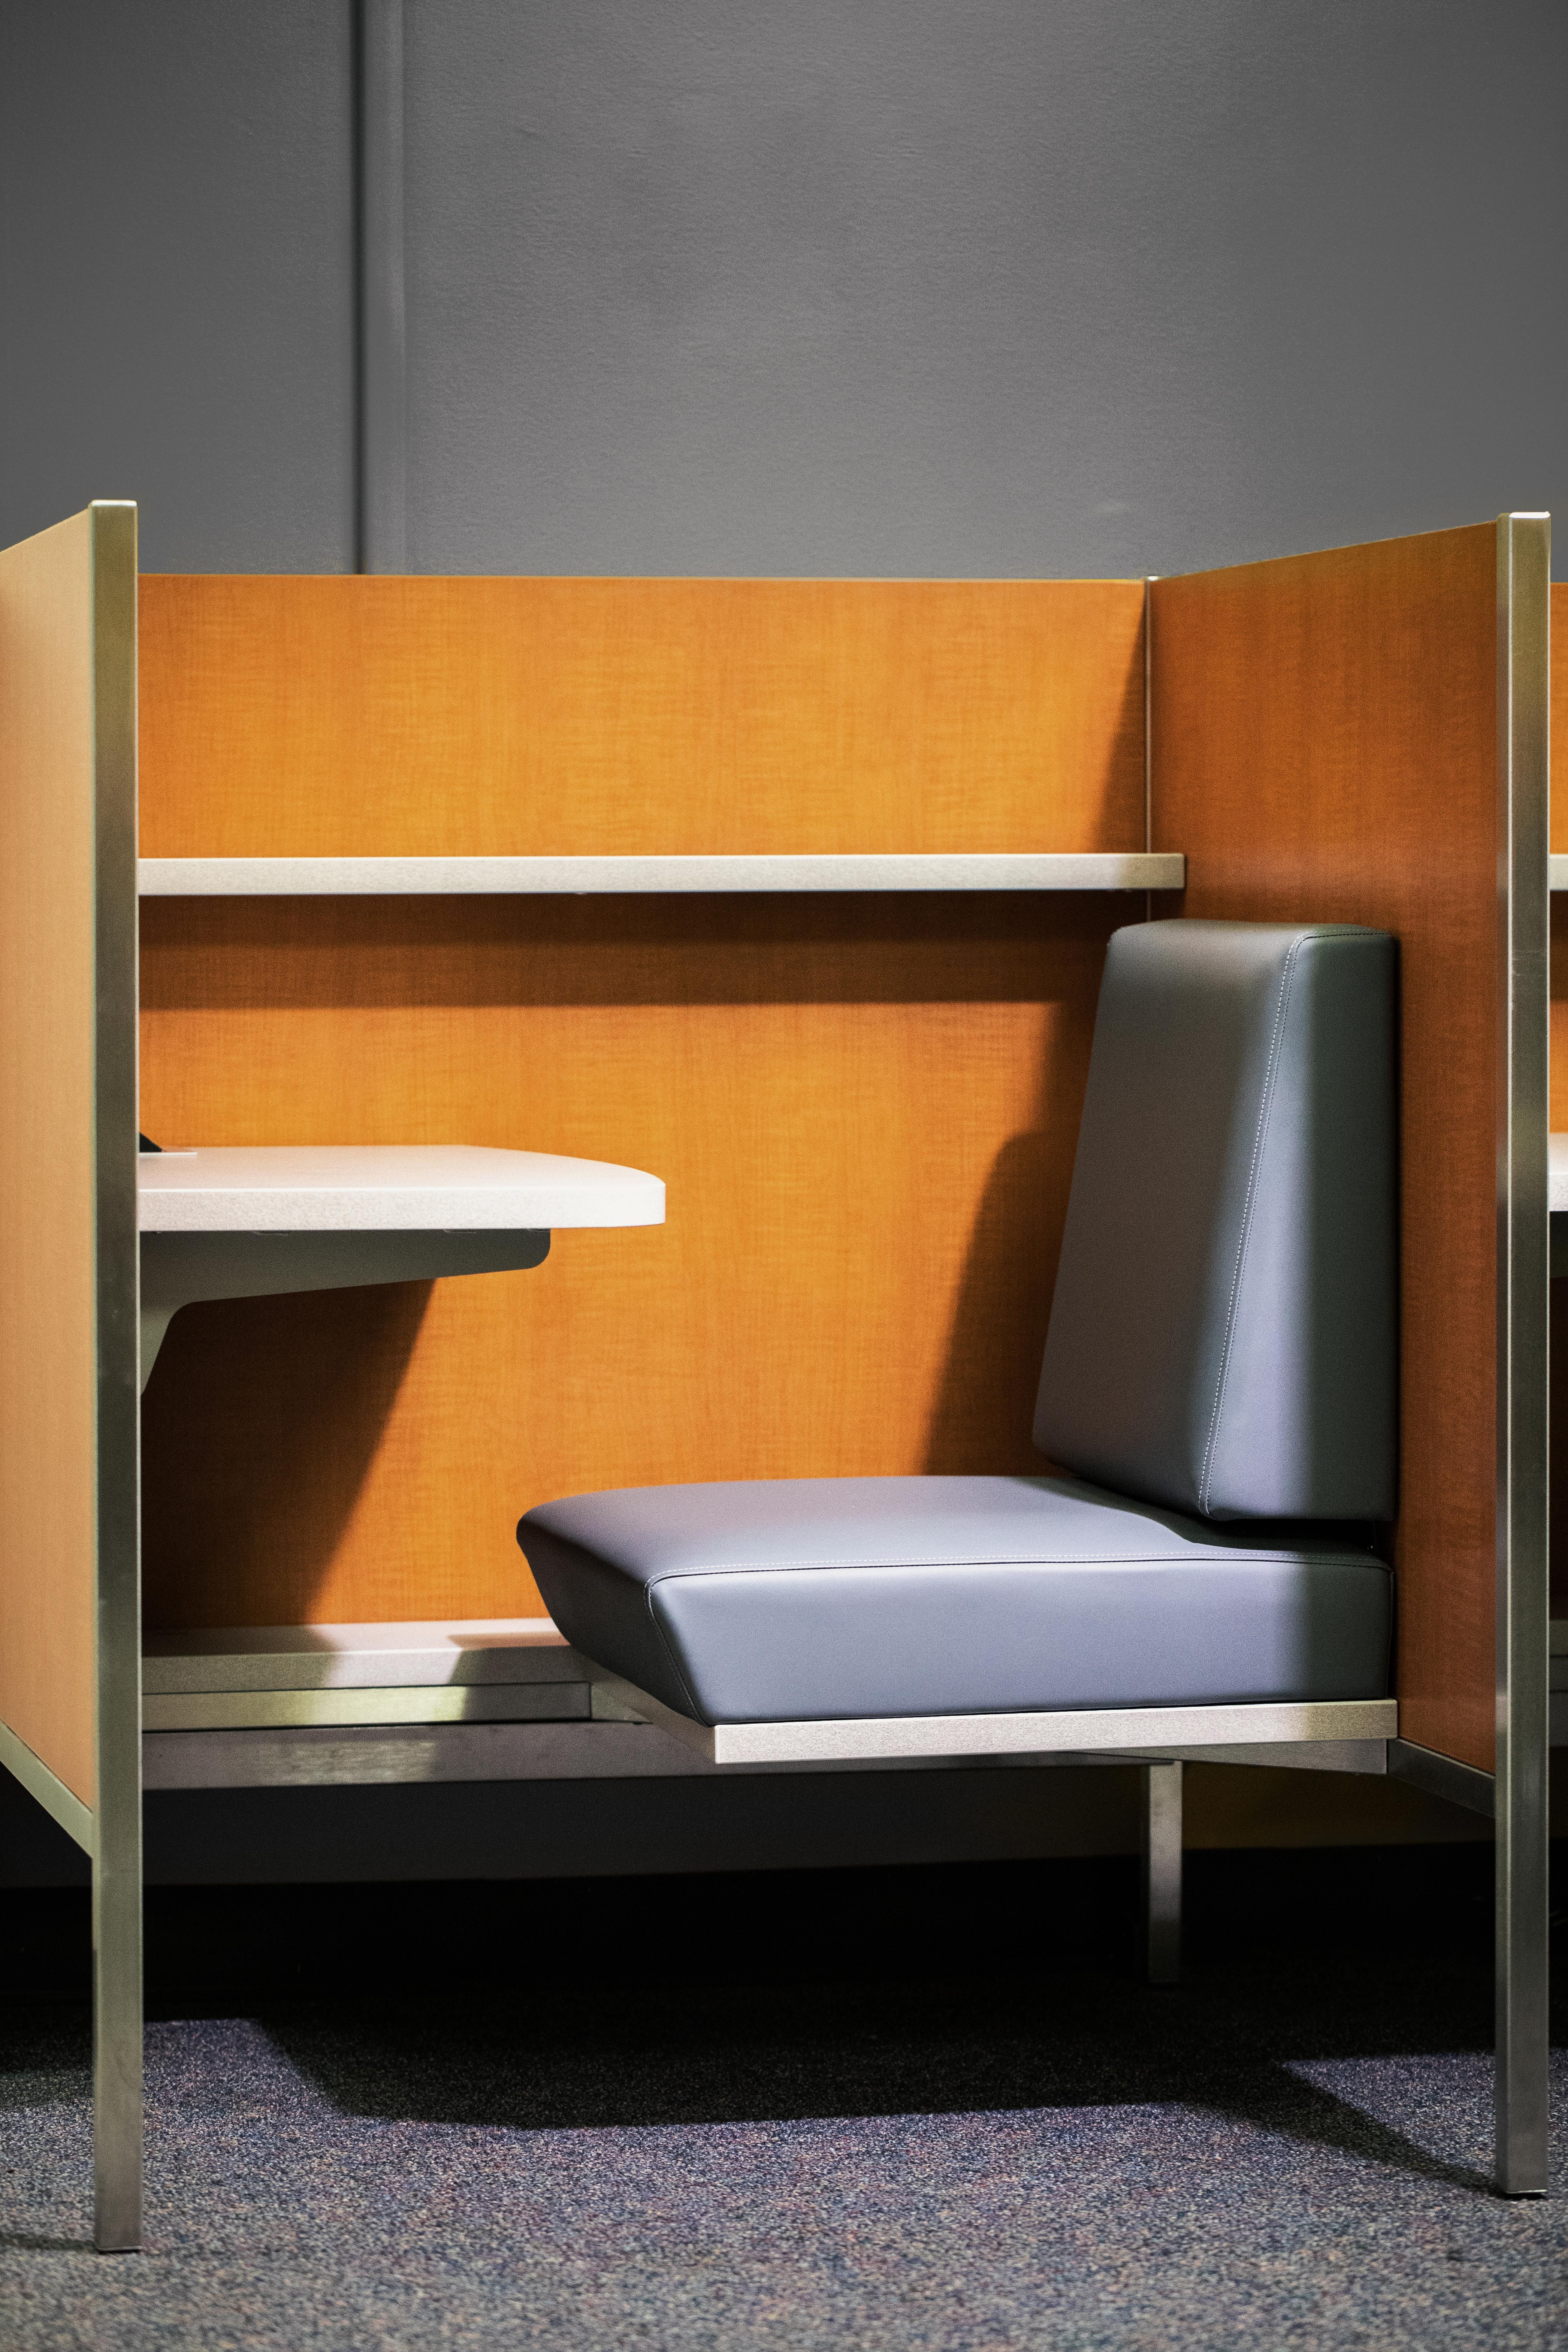 Pin By Dreamality On Escultura In 2020 Library Furniture Design